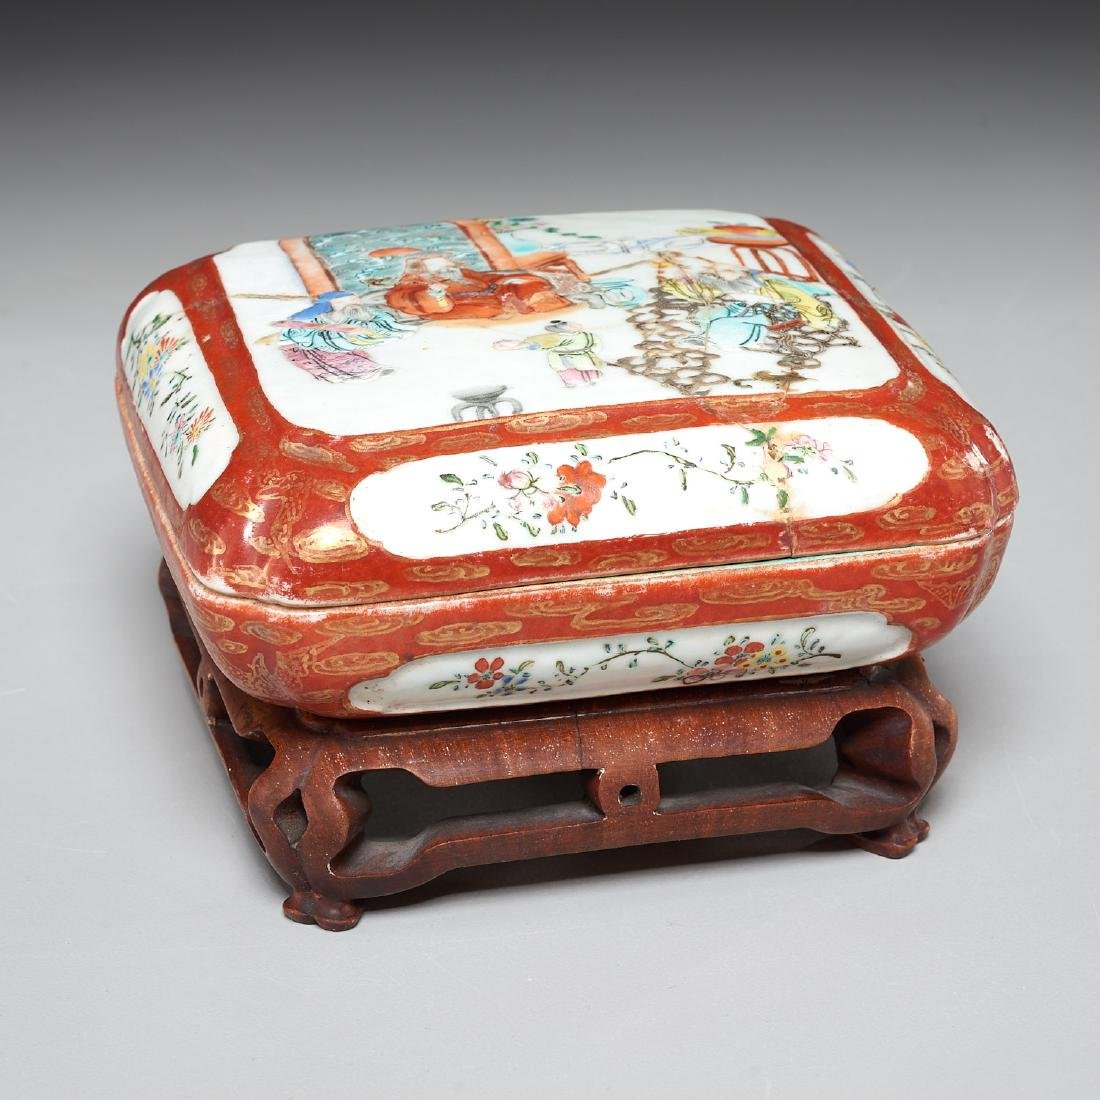 Chinese famille rose lidded box